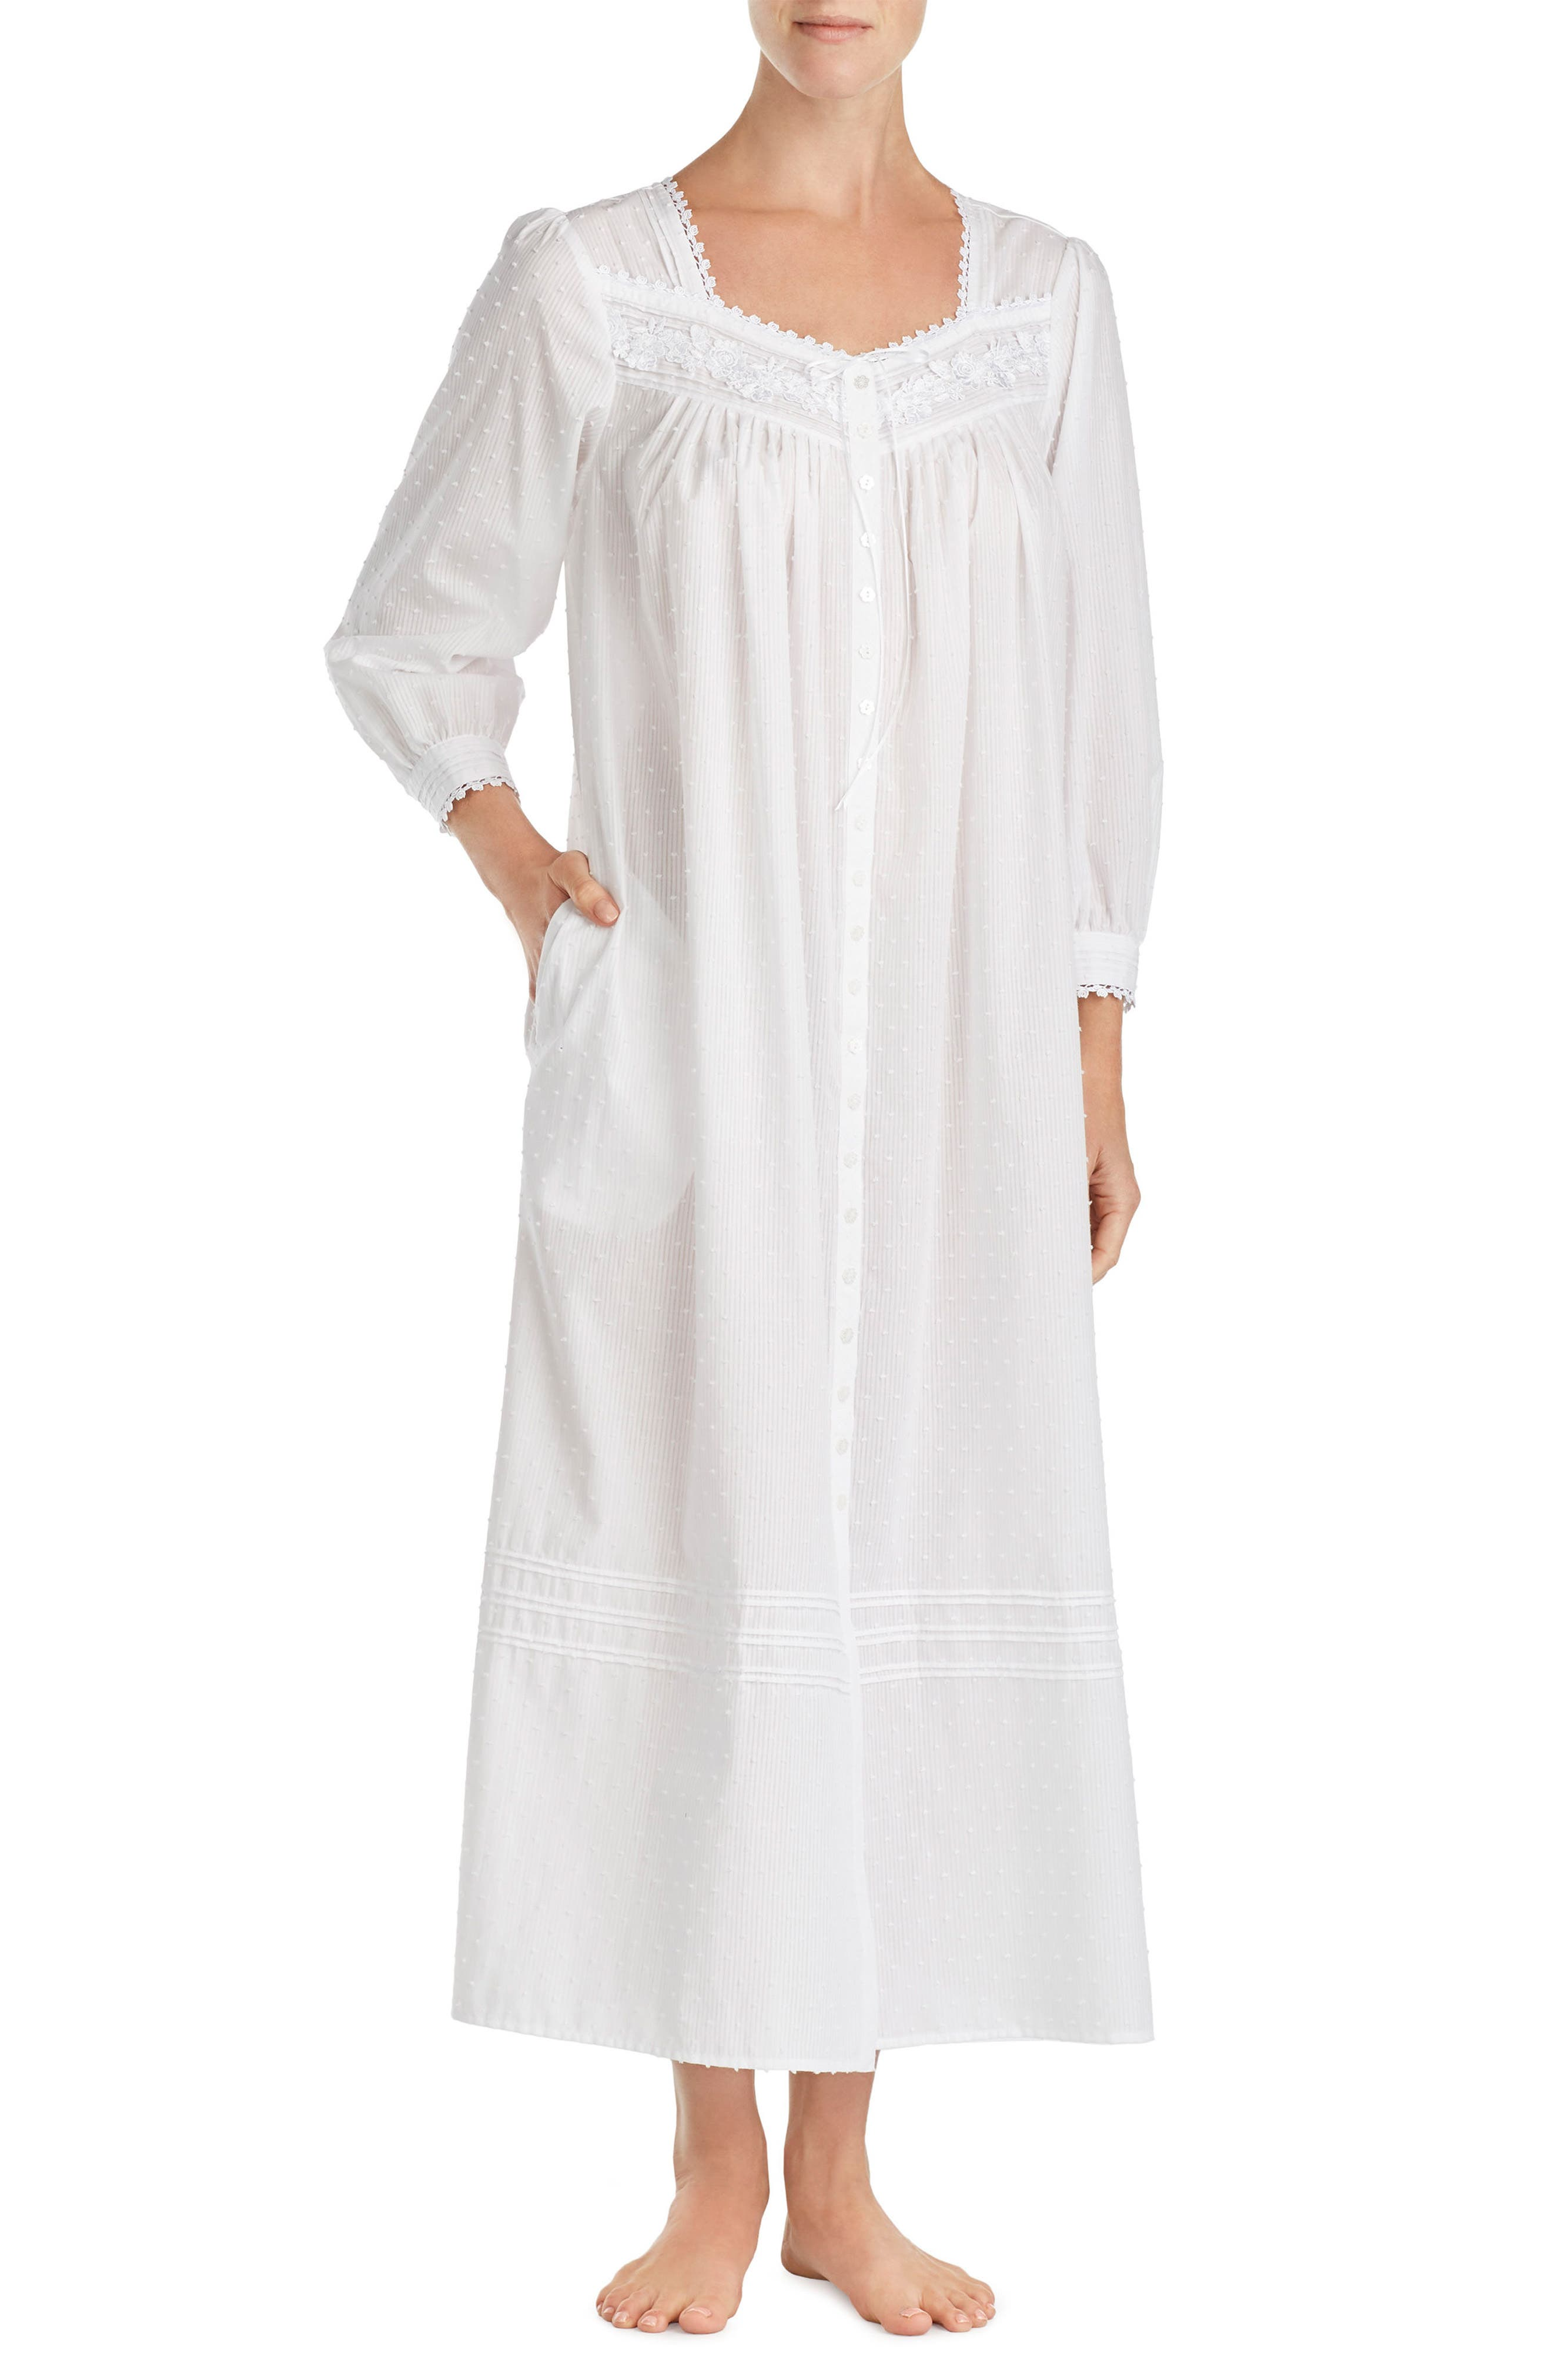 Swiss Dot Nightgown,                             Main thumbnail 1, color,